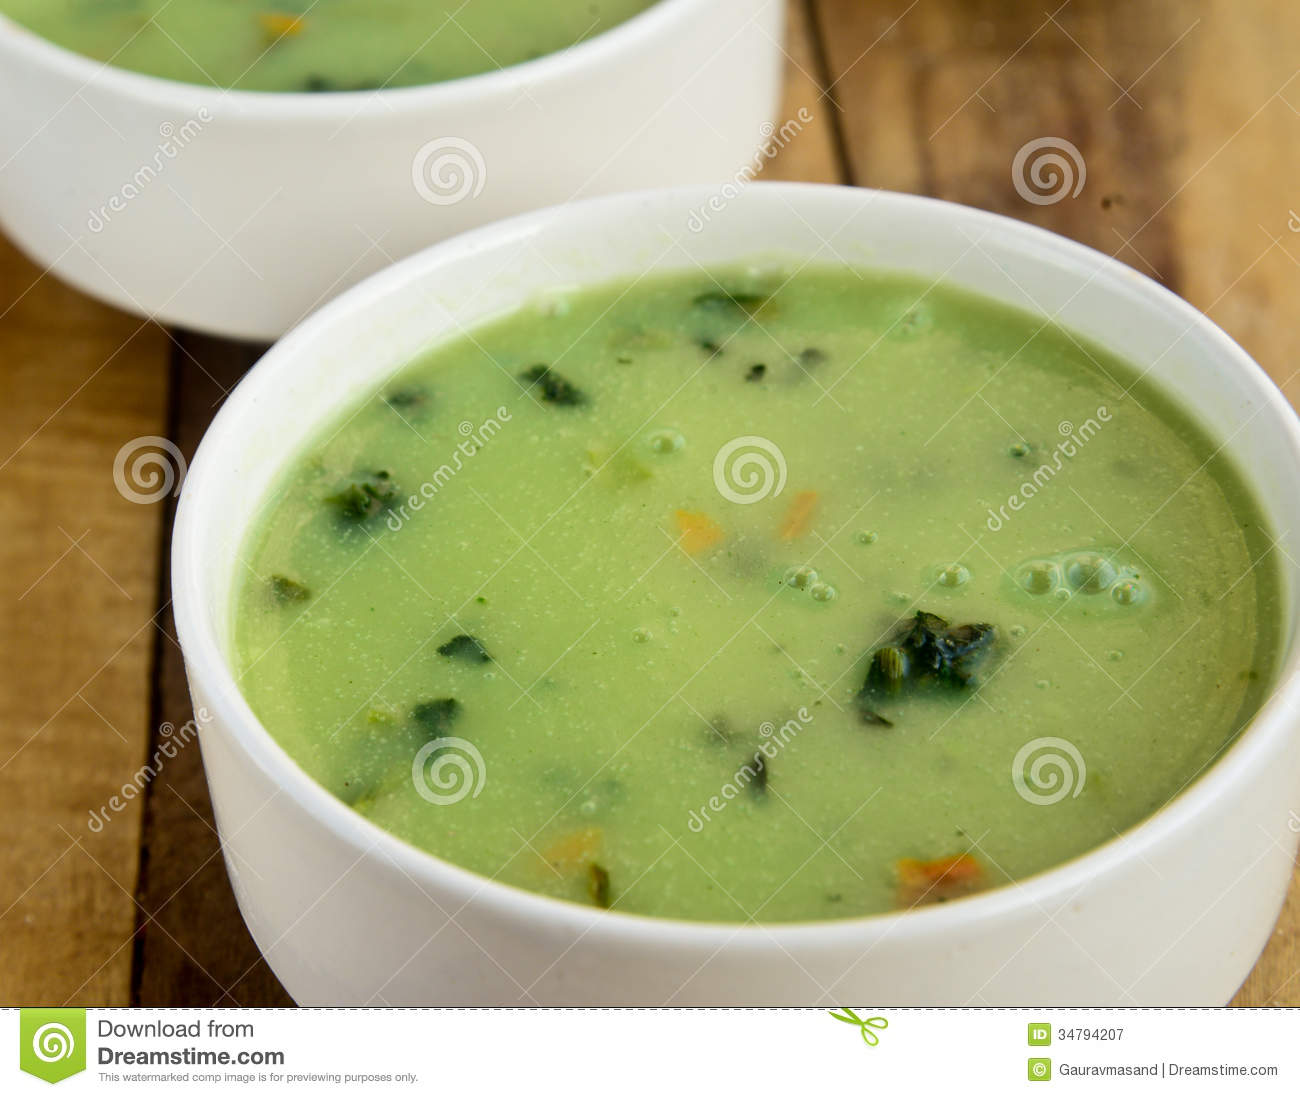 Cream Of Spinach Soup Royalty Free Stock Photography - Image: 34794207